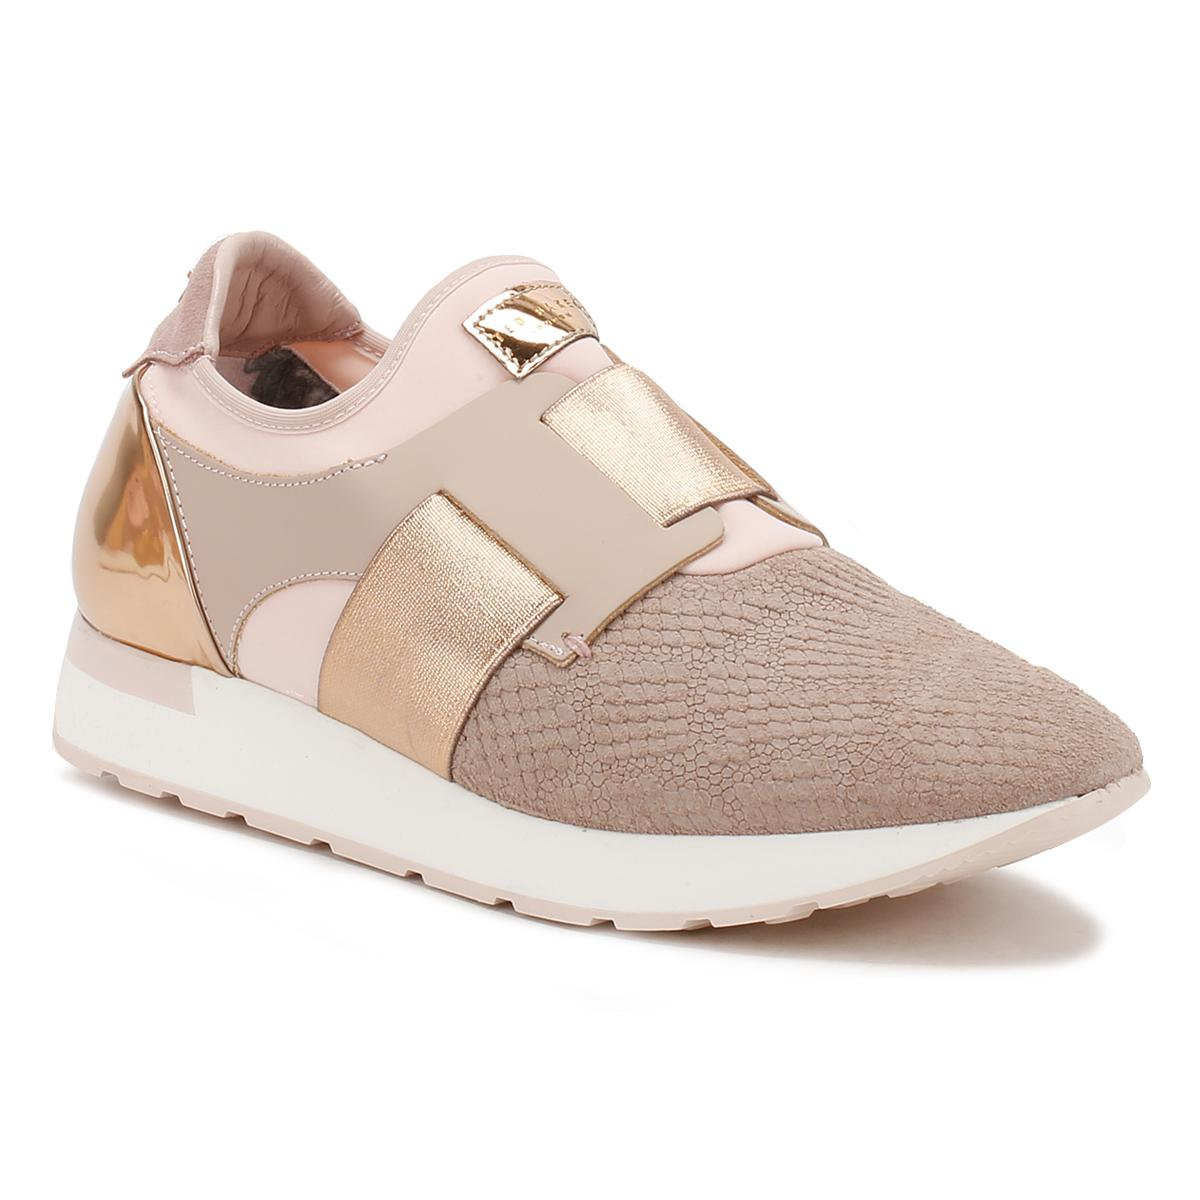 1aa50ef9d Lyst - Ted Baker Womens Pink Kygoa Trainers in Pink